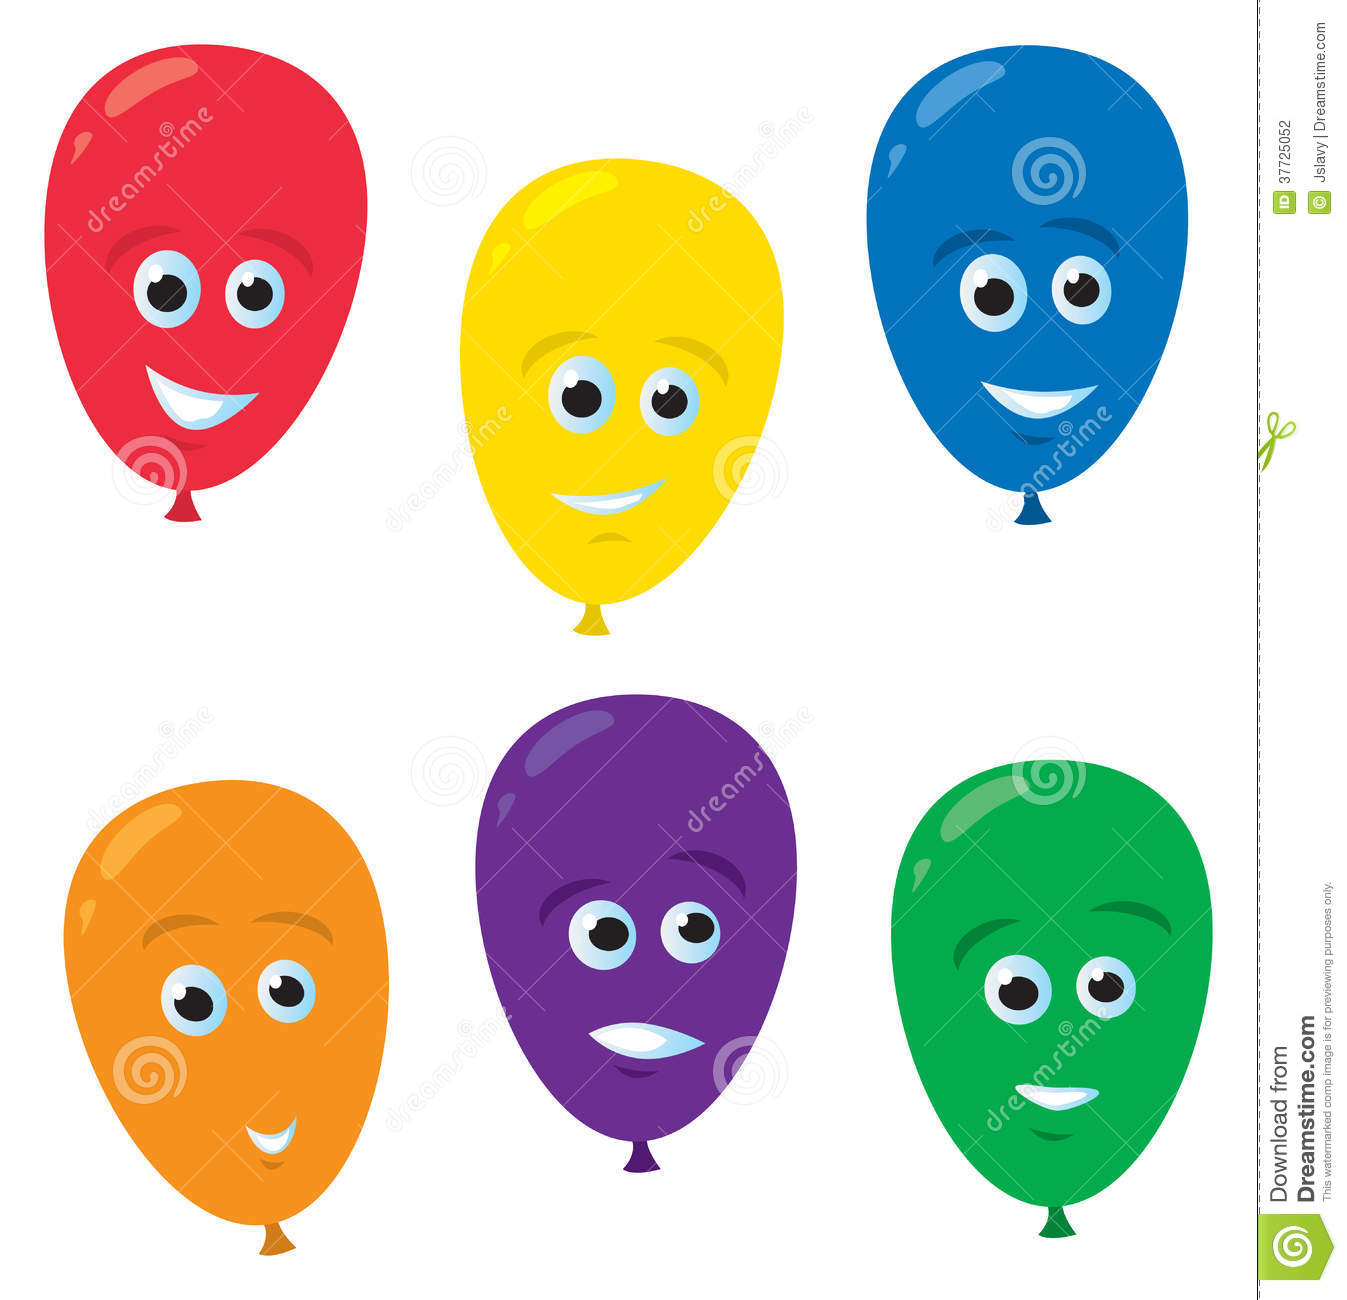 Funny balloon faces - Cartoon Balloon Faces Stock Photography